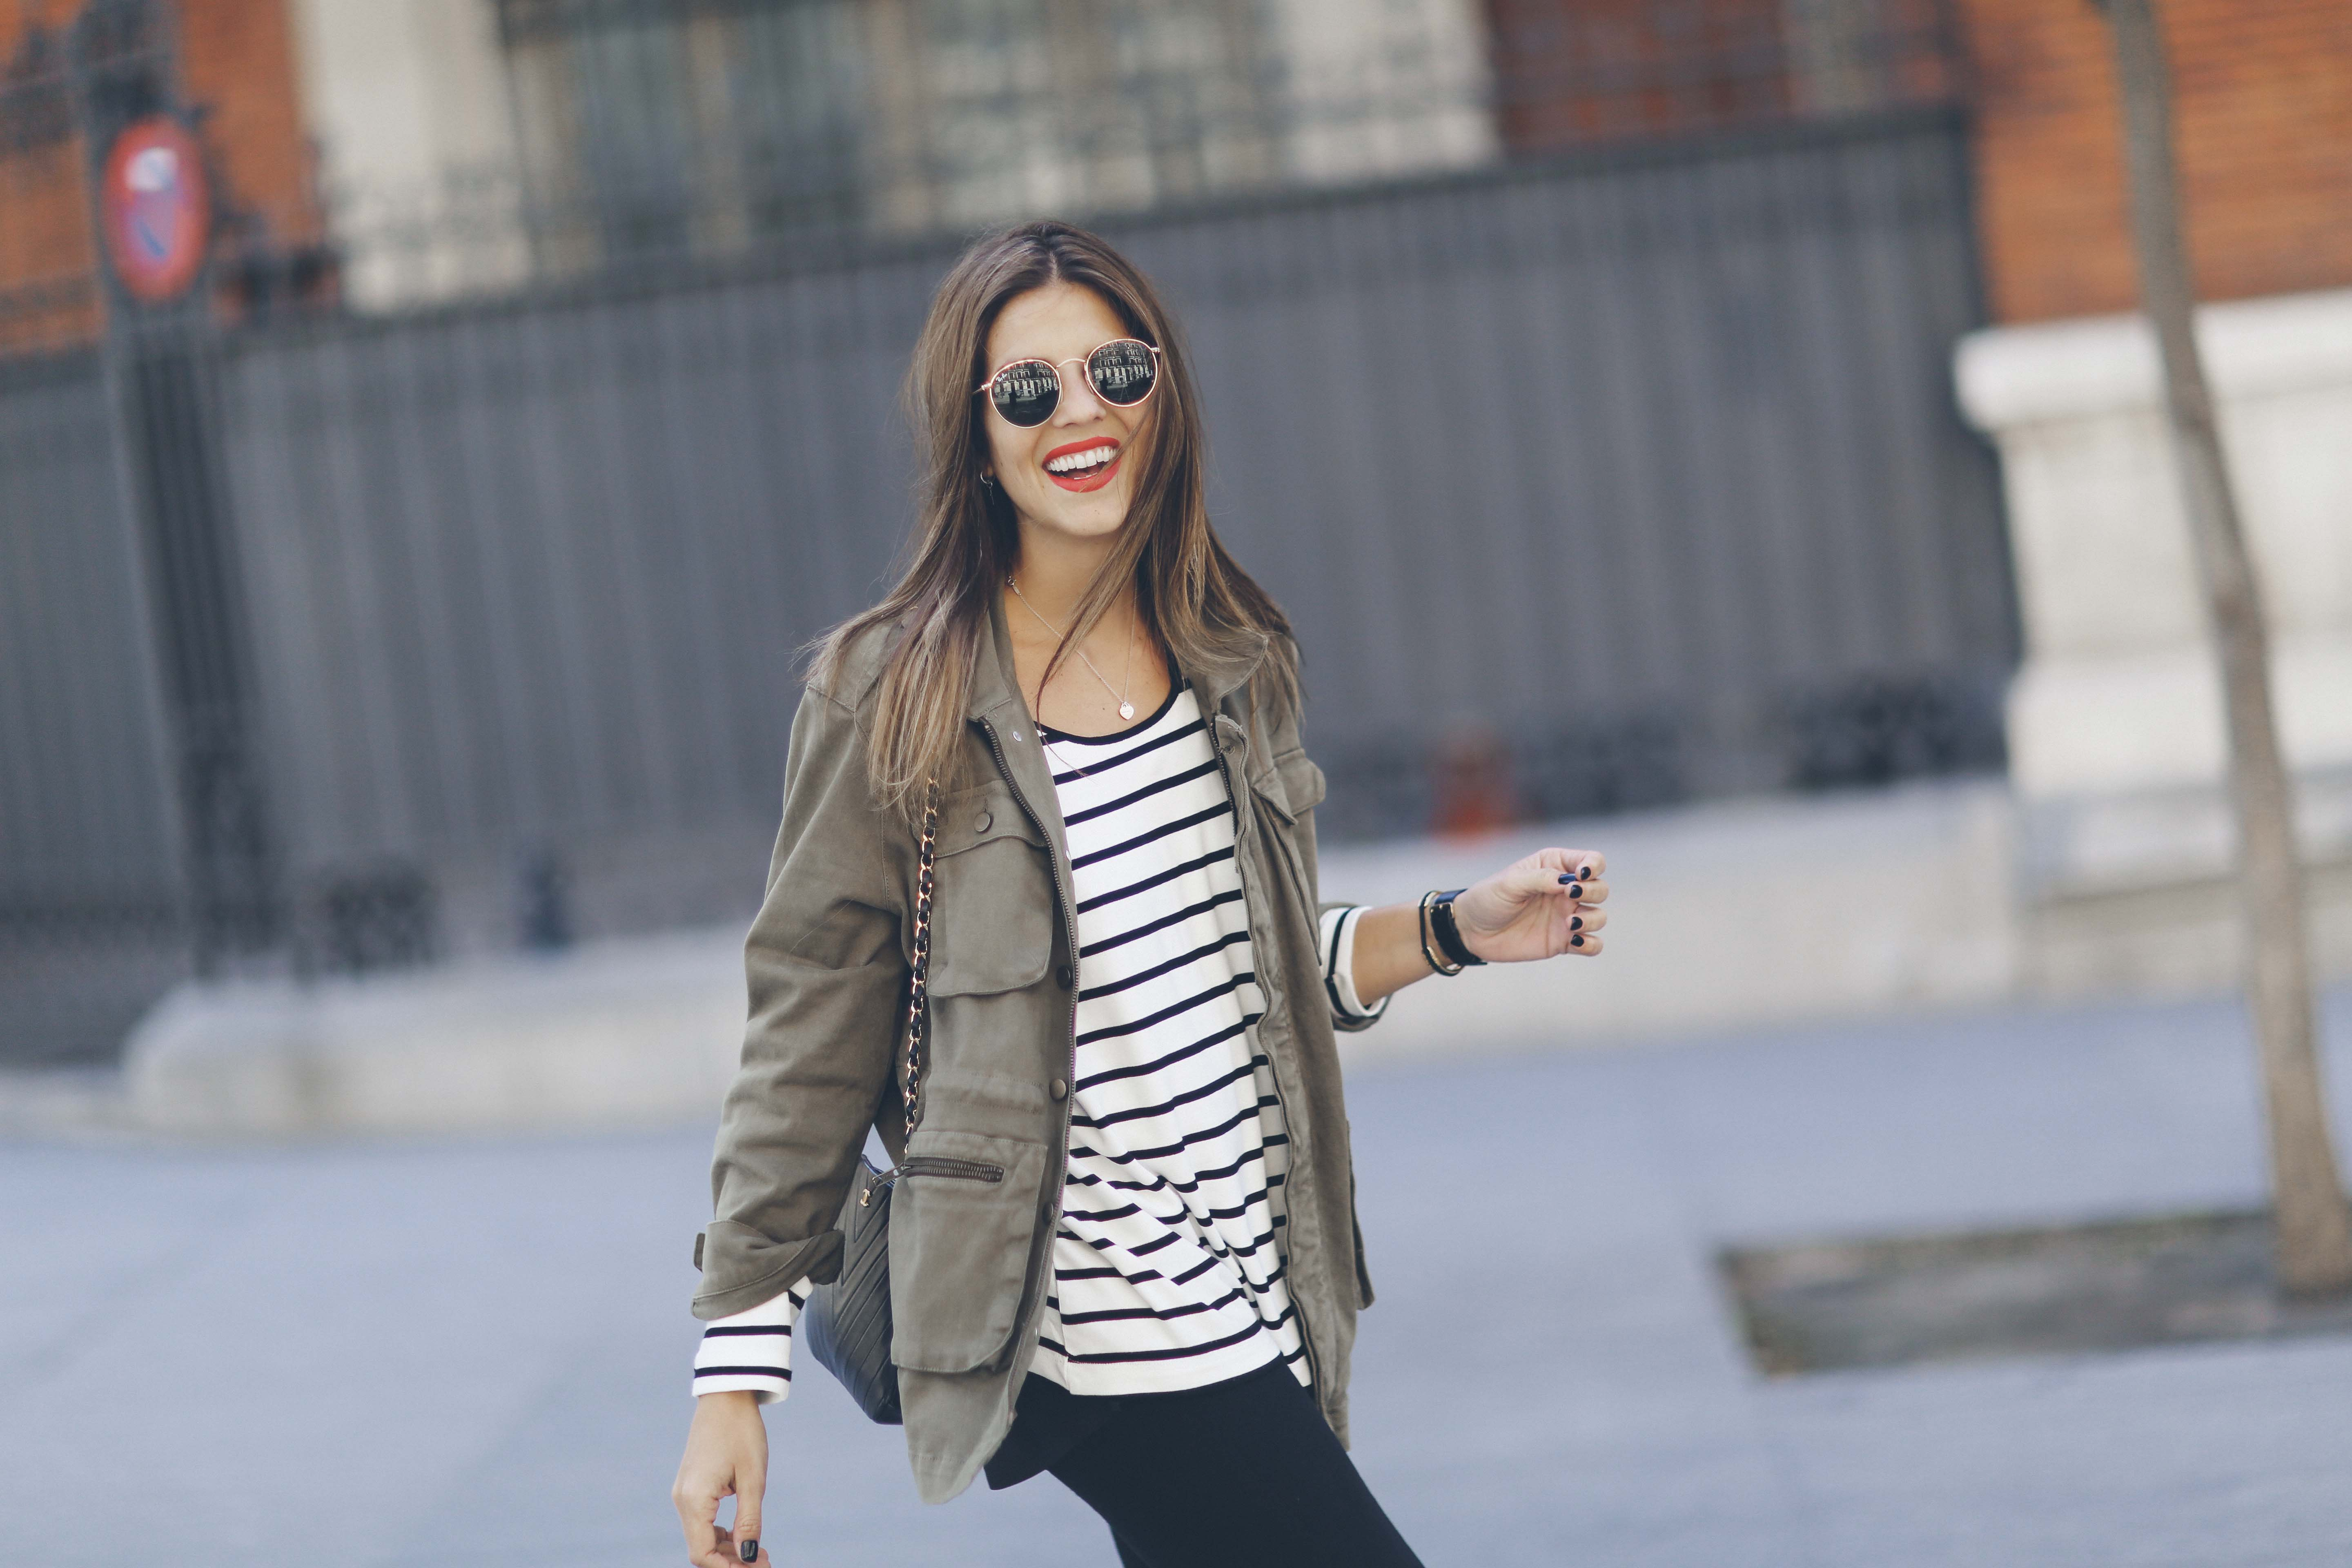 look-outfit-parka-jeans-rayas-zara-chanel-botas-anine_bing-spring-primavera_5